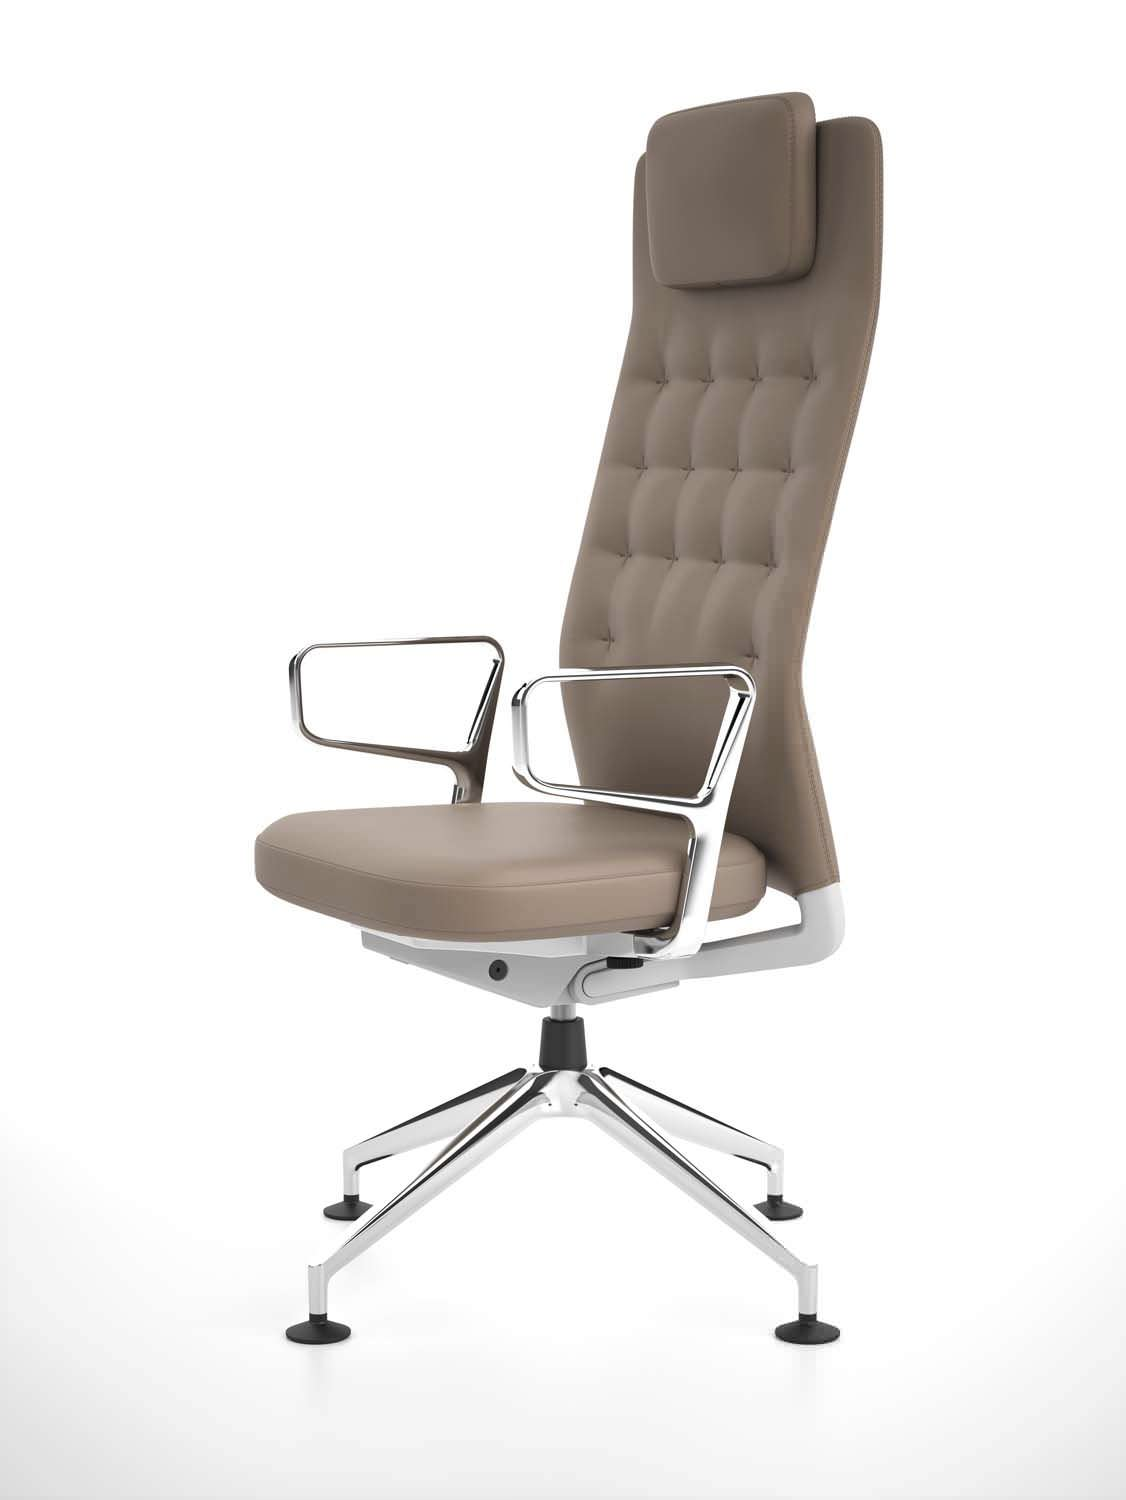 Contemporary Office Chair / Ergonomic / With Headrest / Adjustable   ID  TRIM L